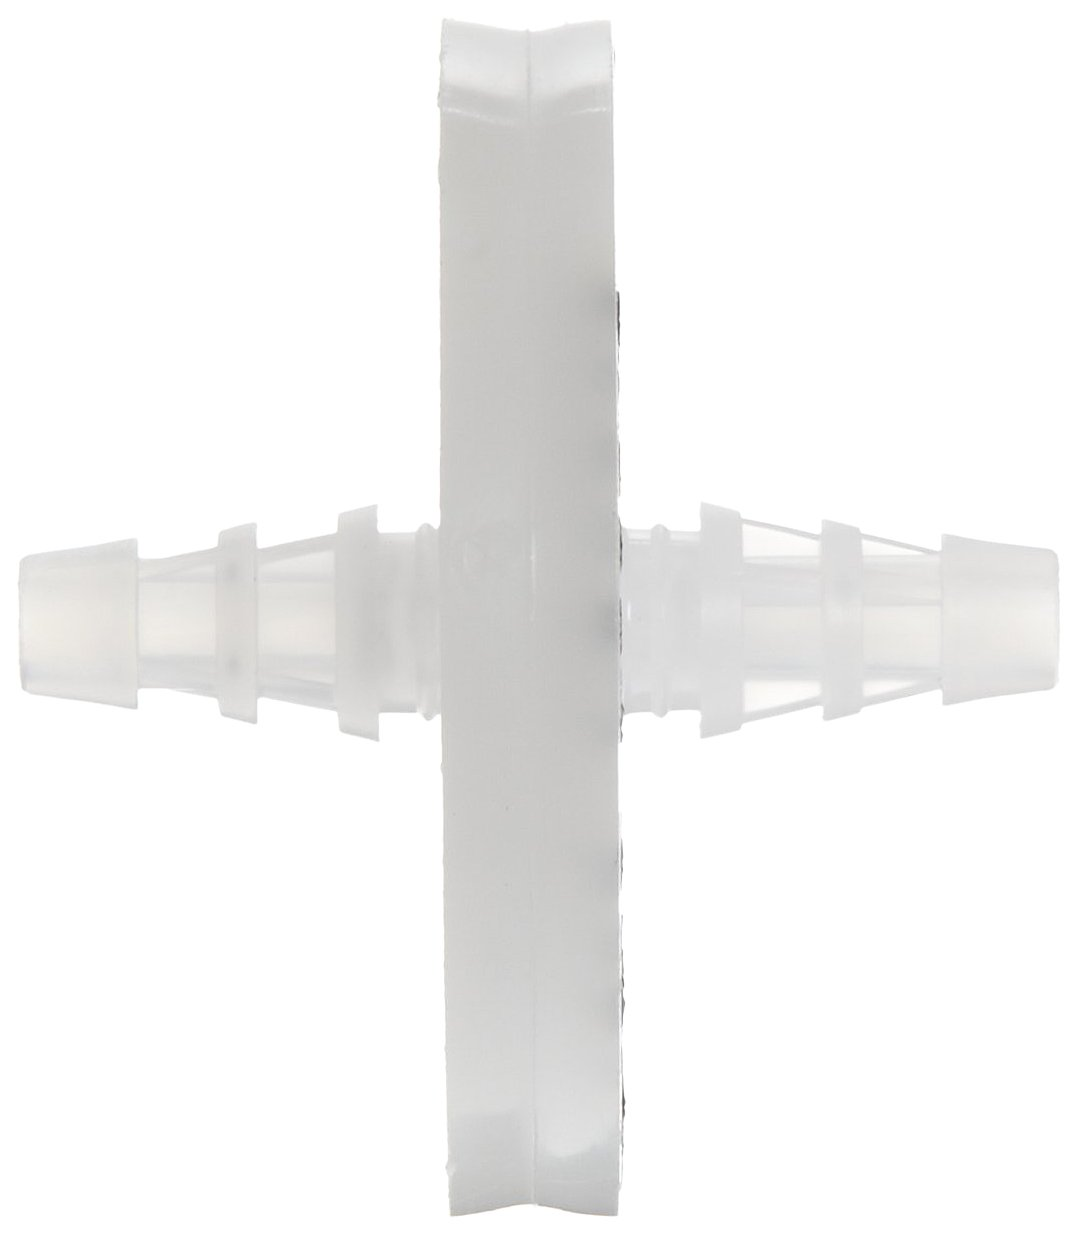 3//8 x 1//2 Inlet 3//8 x 1//2 Outlet WHA-6713-1650 0.2 Micron Whatman 6713-1650 PTFE PolyVENT 16 Venting Filter Discs Membrane Stepped Barb Fittings 3//8 x 1//2 Inlet Pack of 10 3//8 x 1//2 Outlet 50mm Diameter